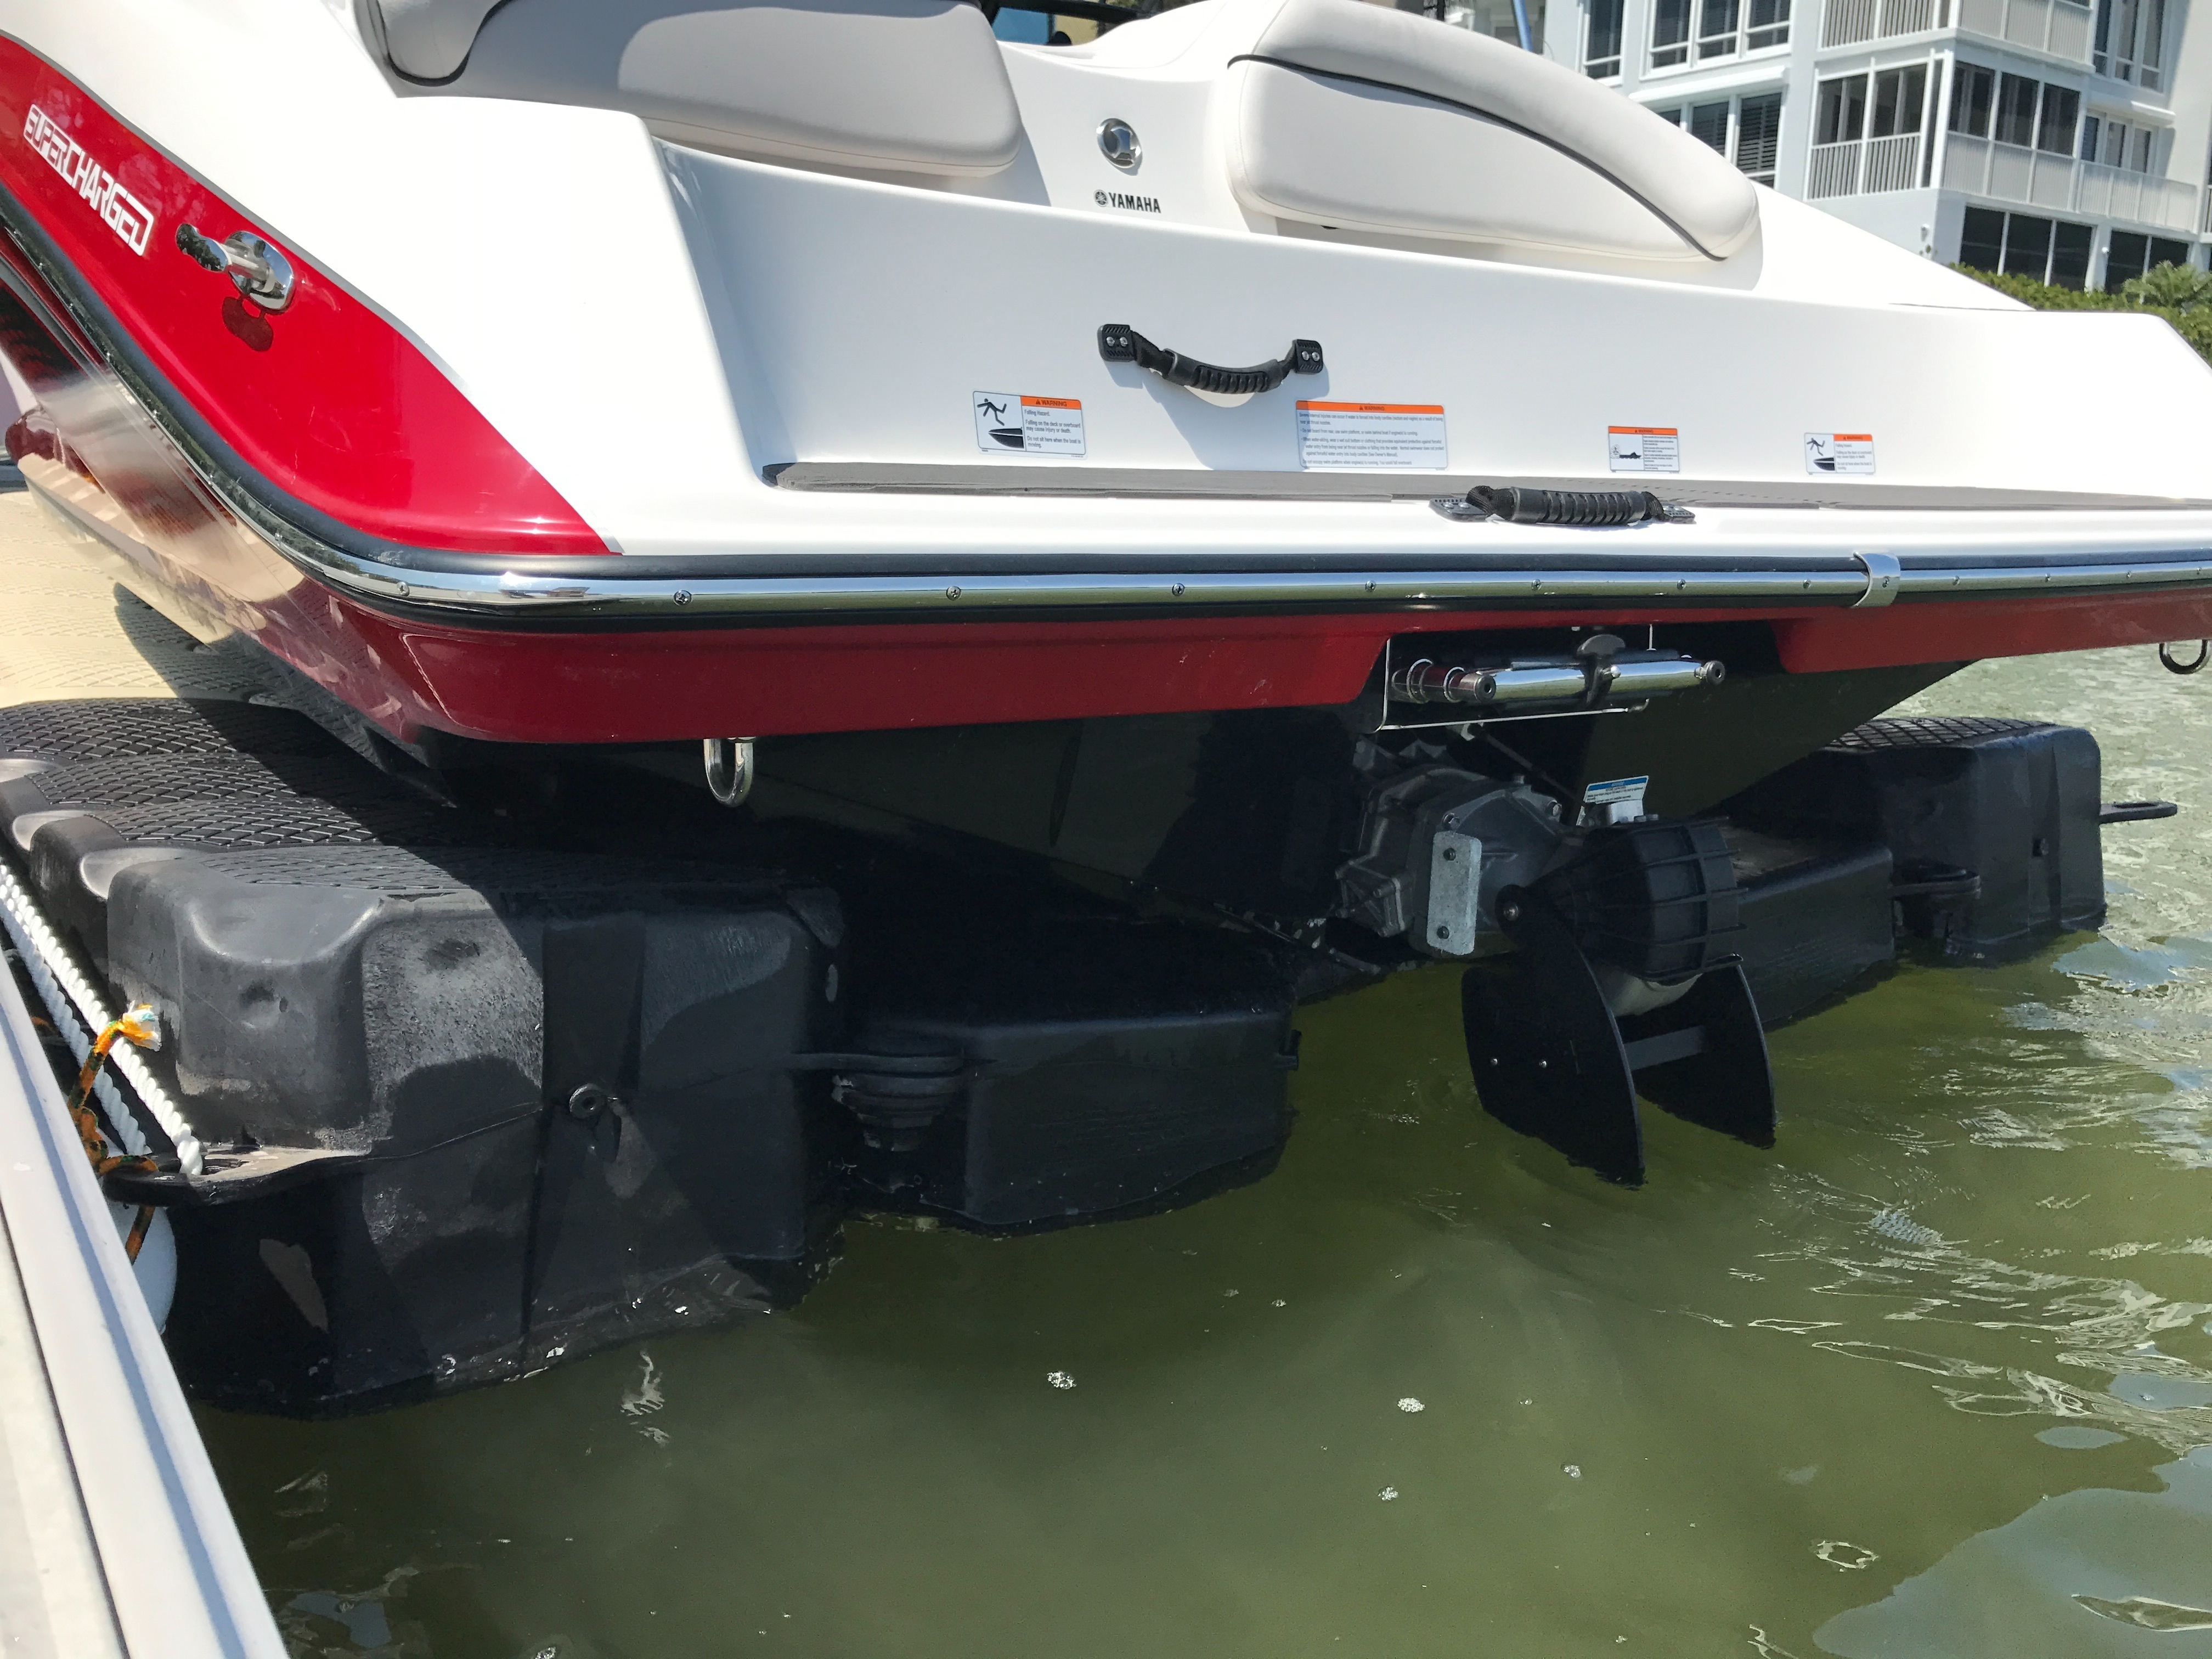 Used yamaha sx190 jet boats for sale for Used yamaha sx190